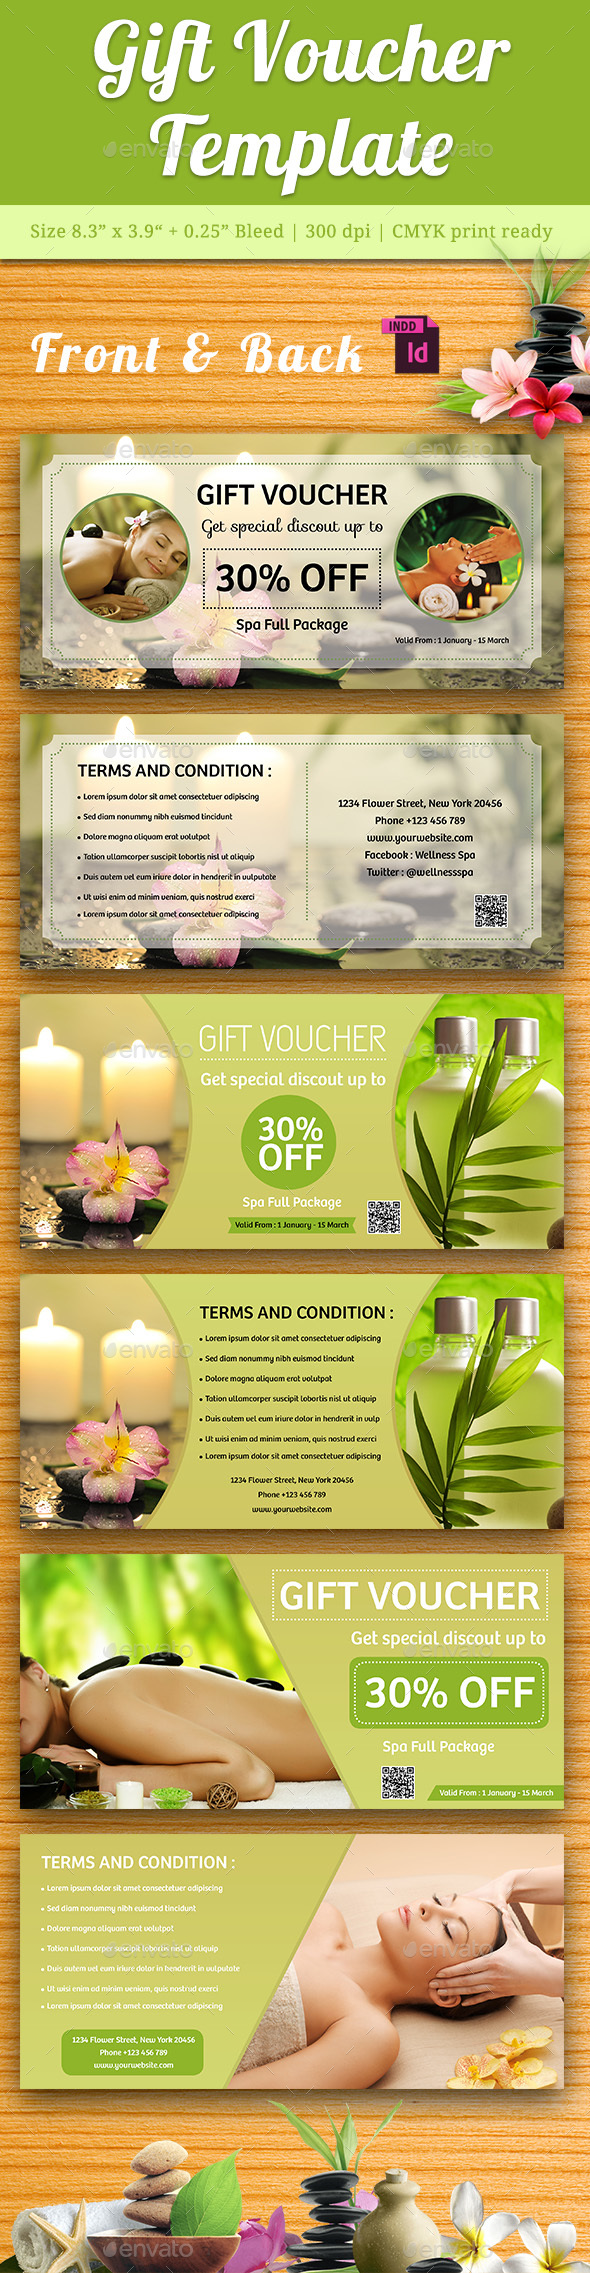 Gift Voucher Vol. 4 - Greeting Cards Cards & Invites